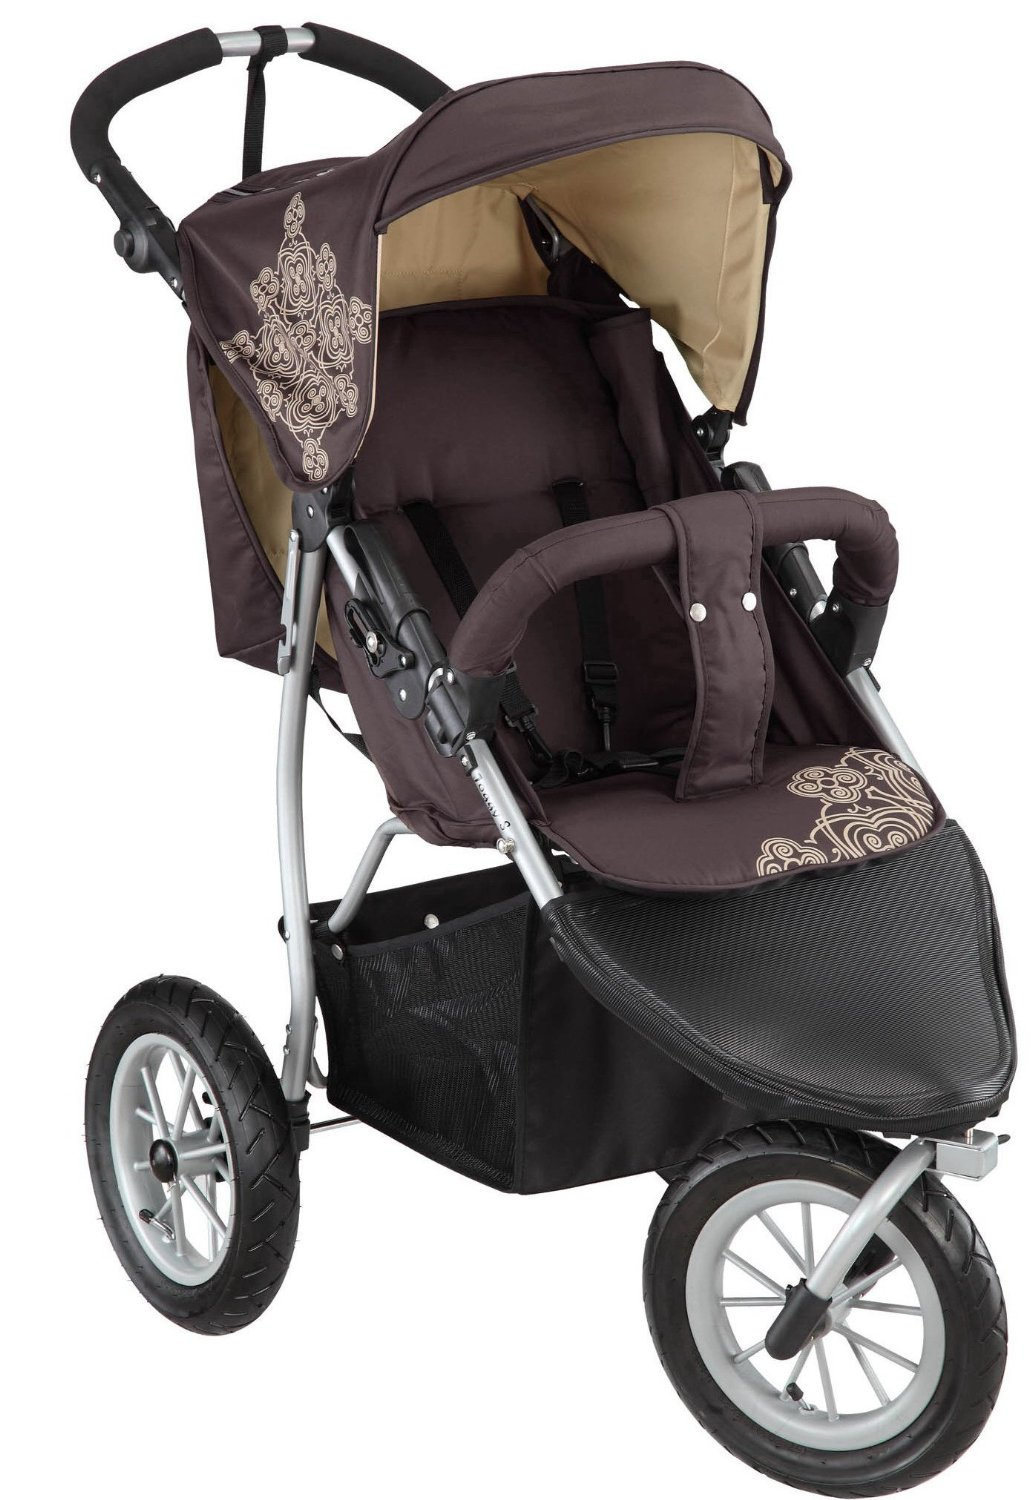 kinderwagen test 2018 die besten kombikinderwagen buggys. Black Bedroom Furniture Sets. Home Design Ideas